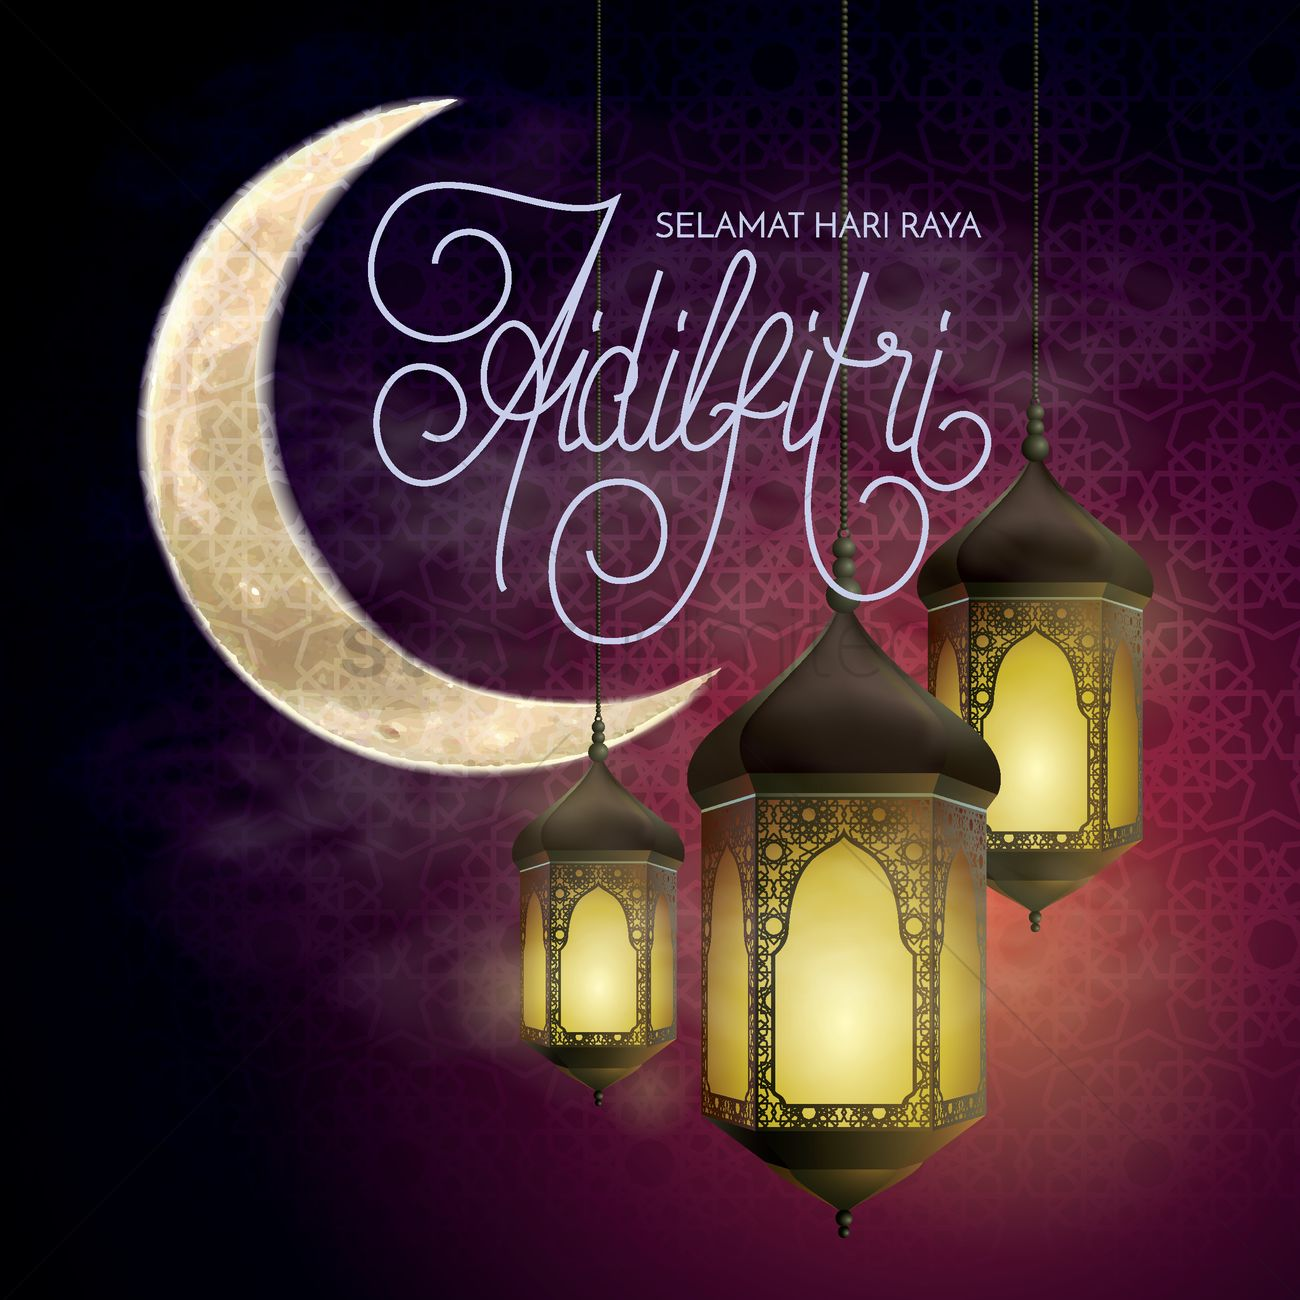 Selamat Hari Raya Greeting Vector Image 1828200 Stockunlimited